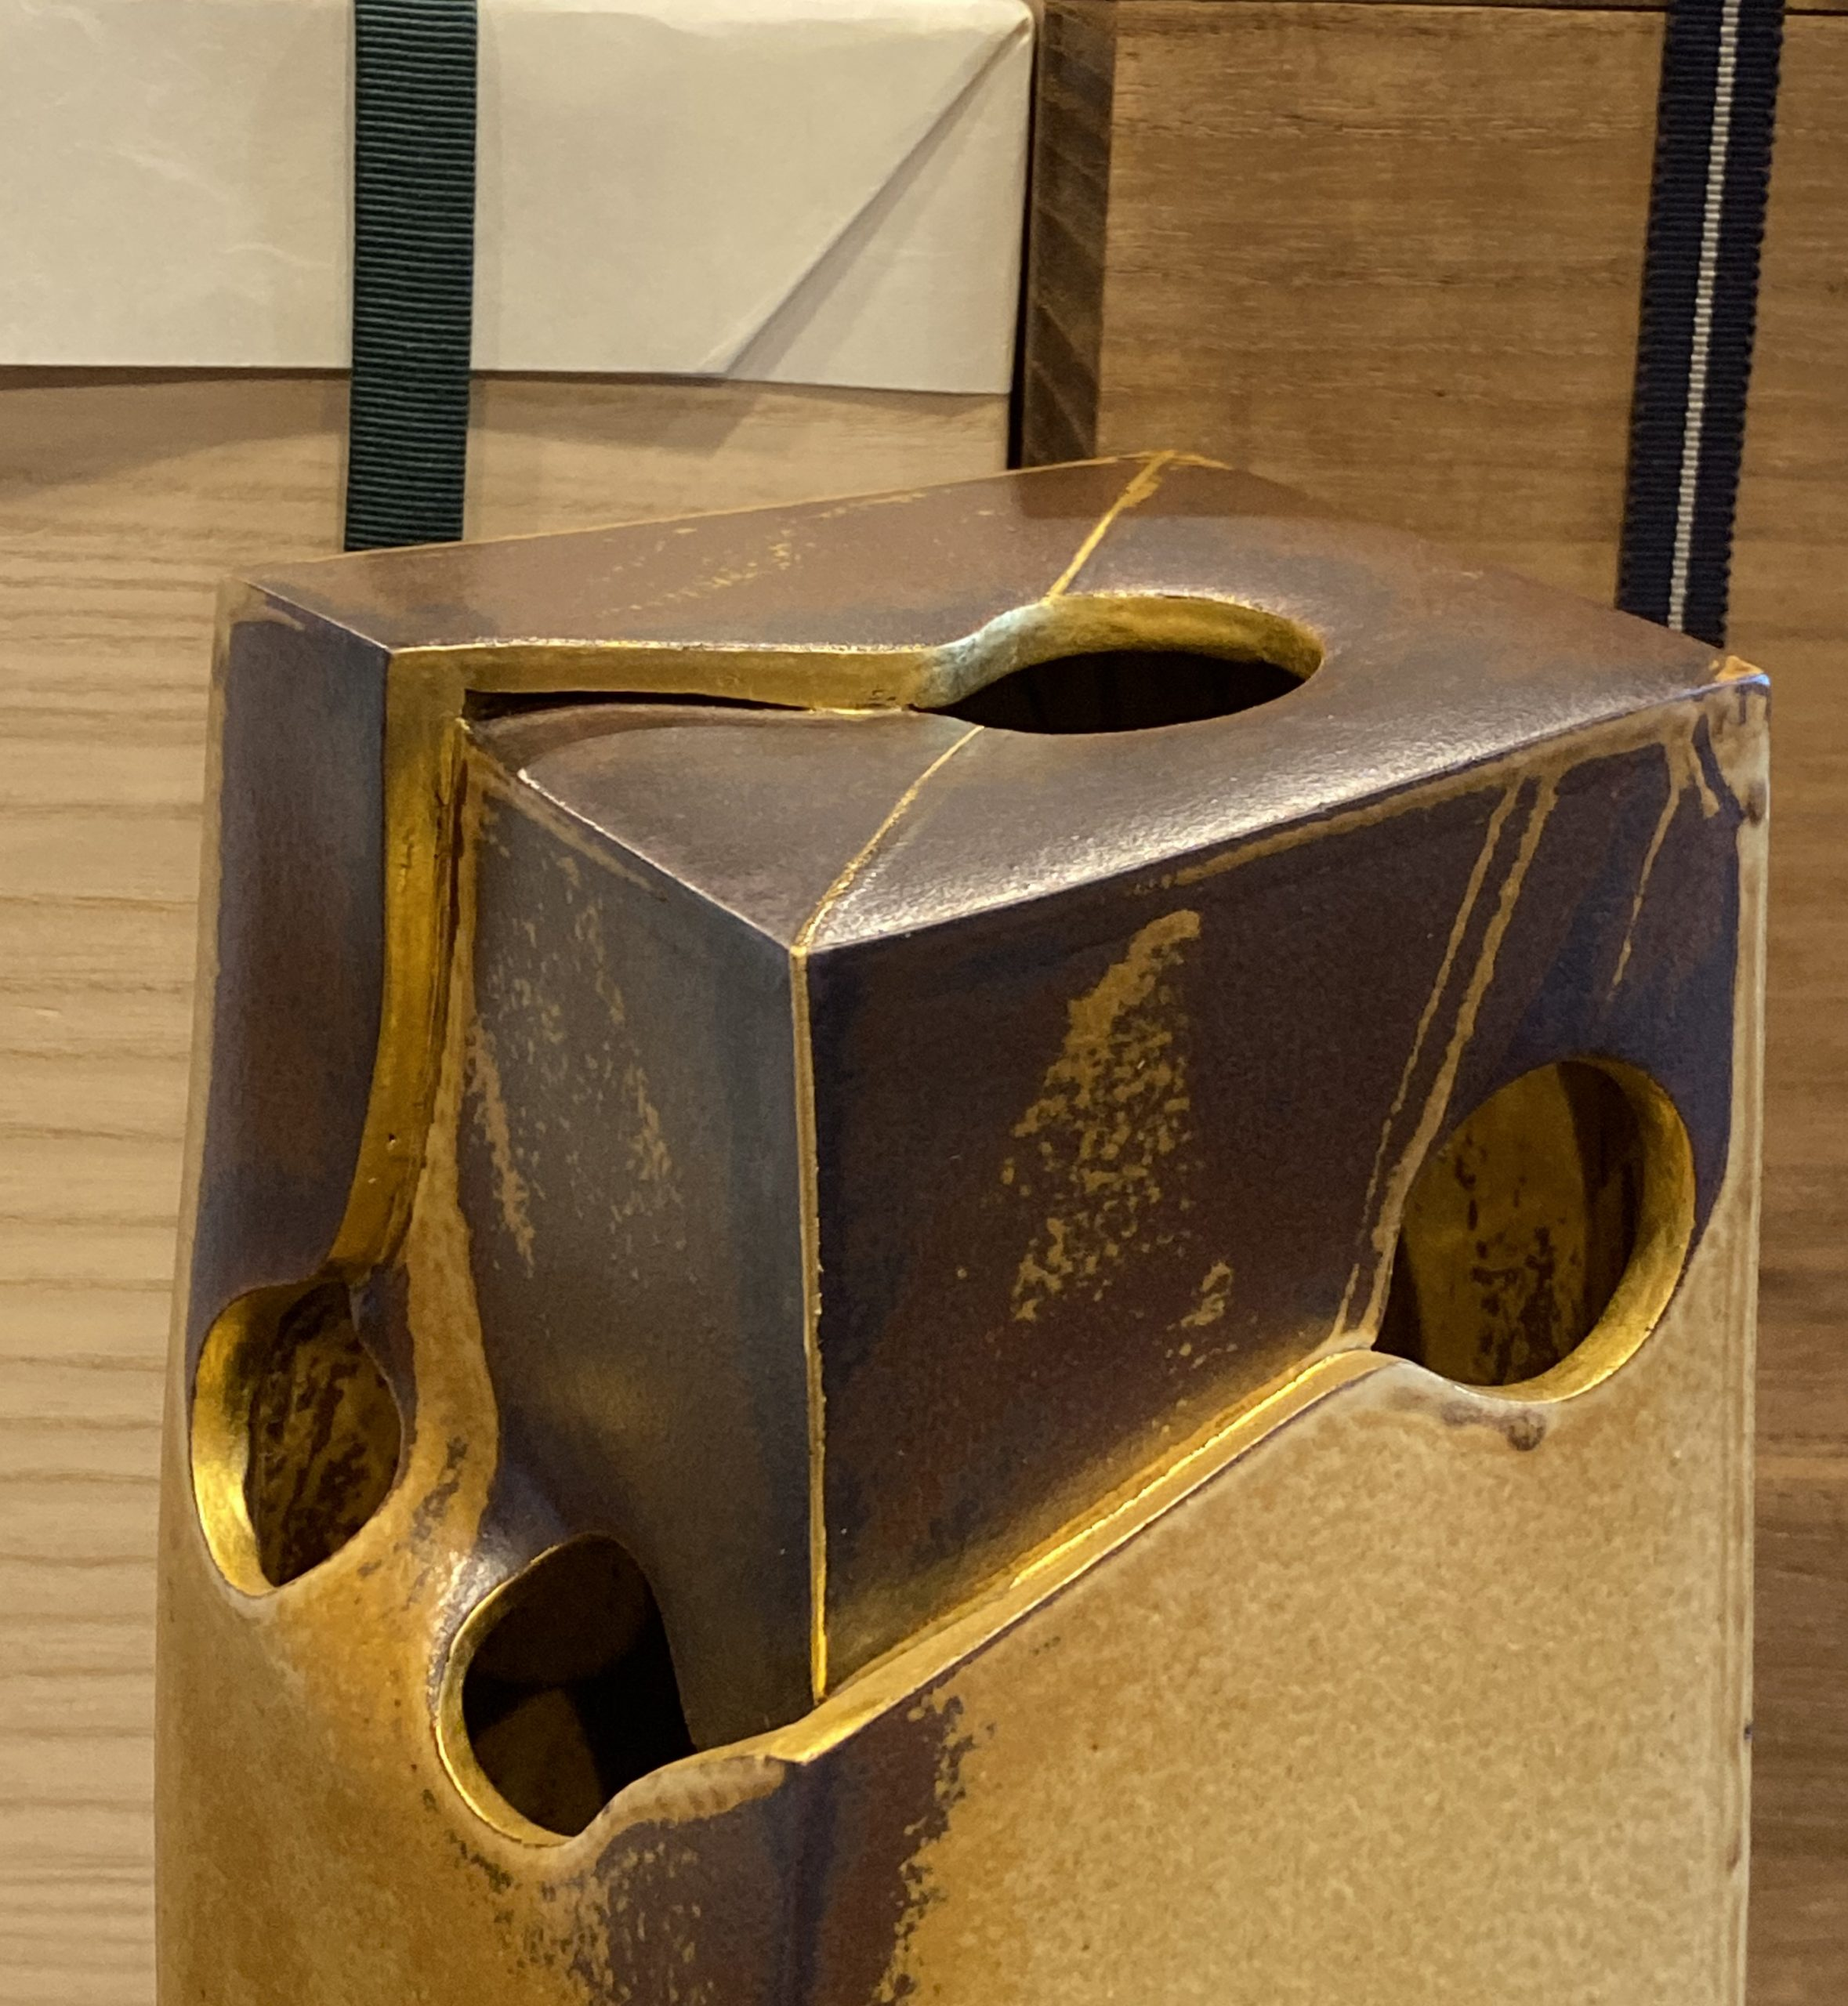 Gold-Irabo Glazed Sculpture Vase by Kiyomizu Rokube VII